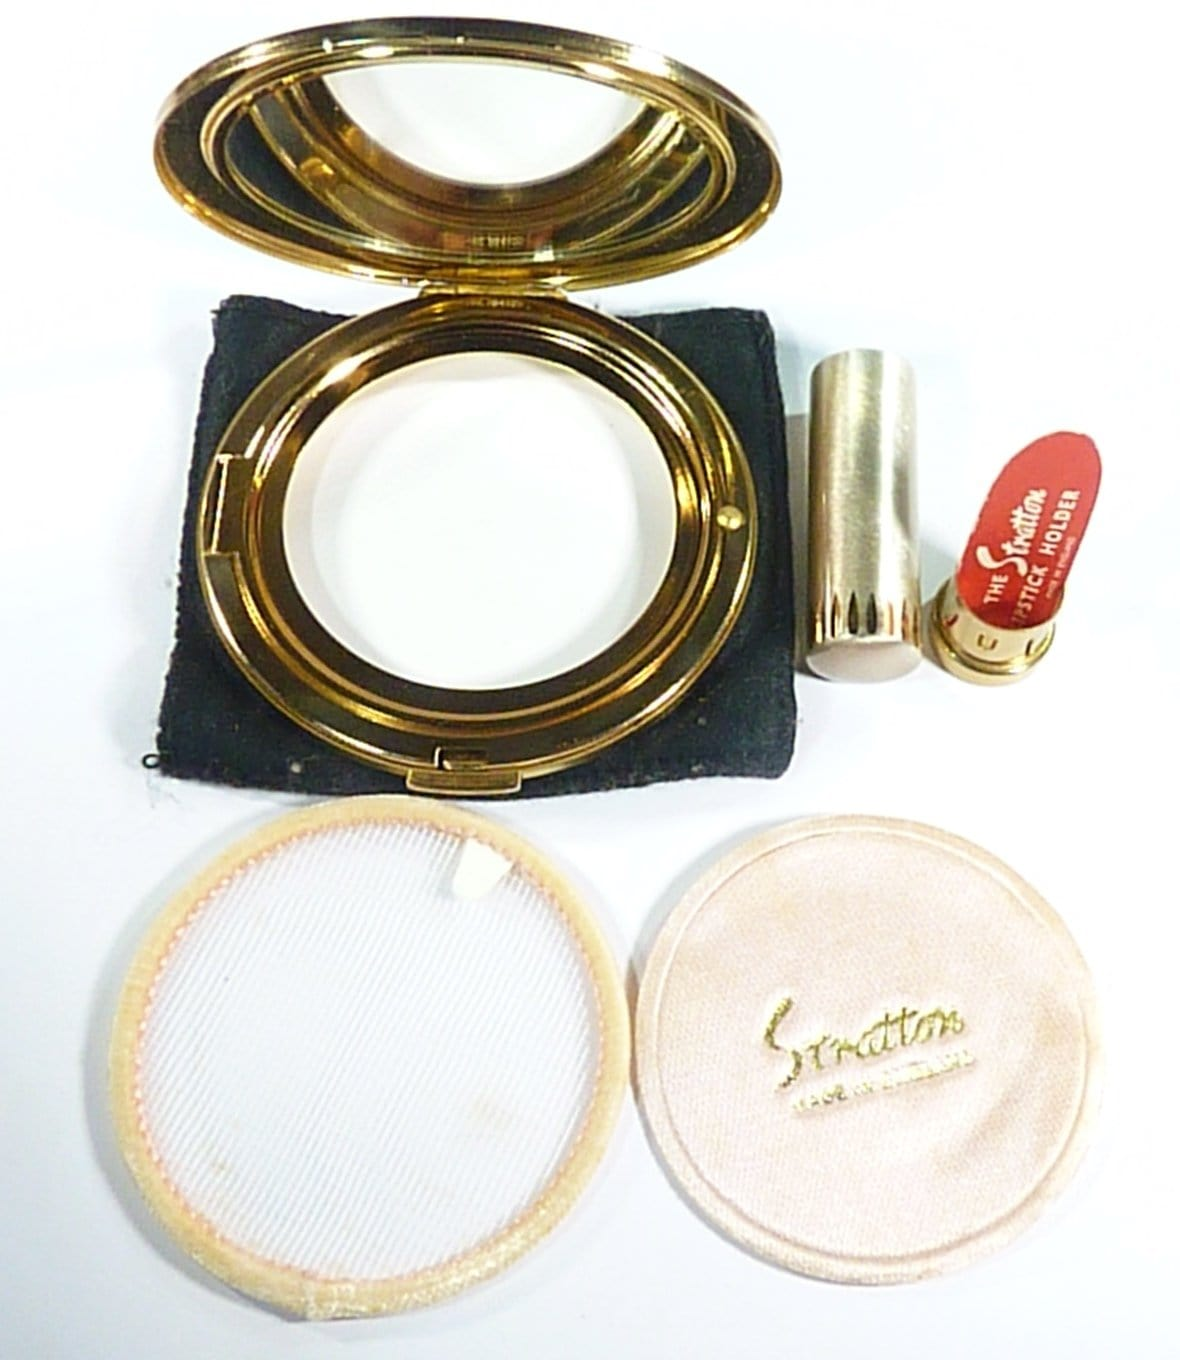 Stratton Refillable Powder Compact